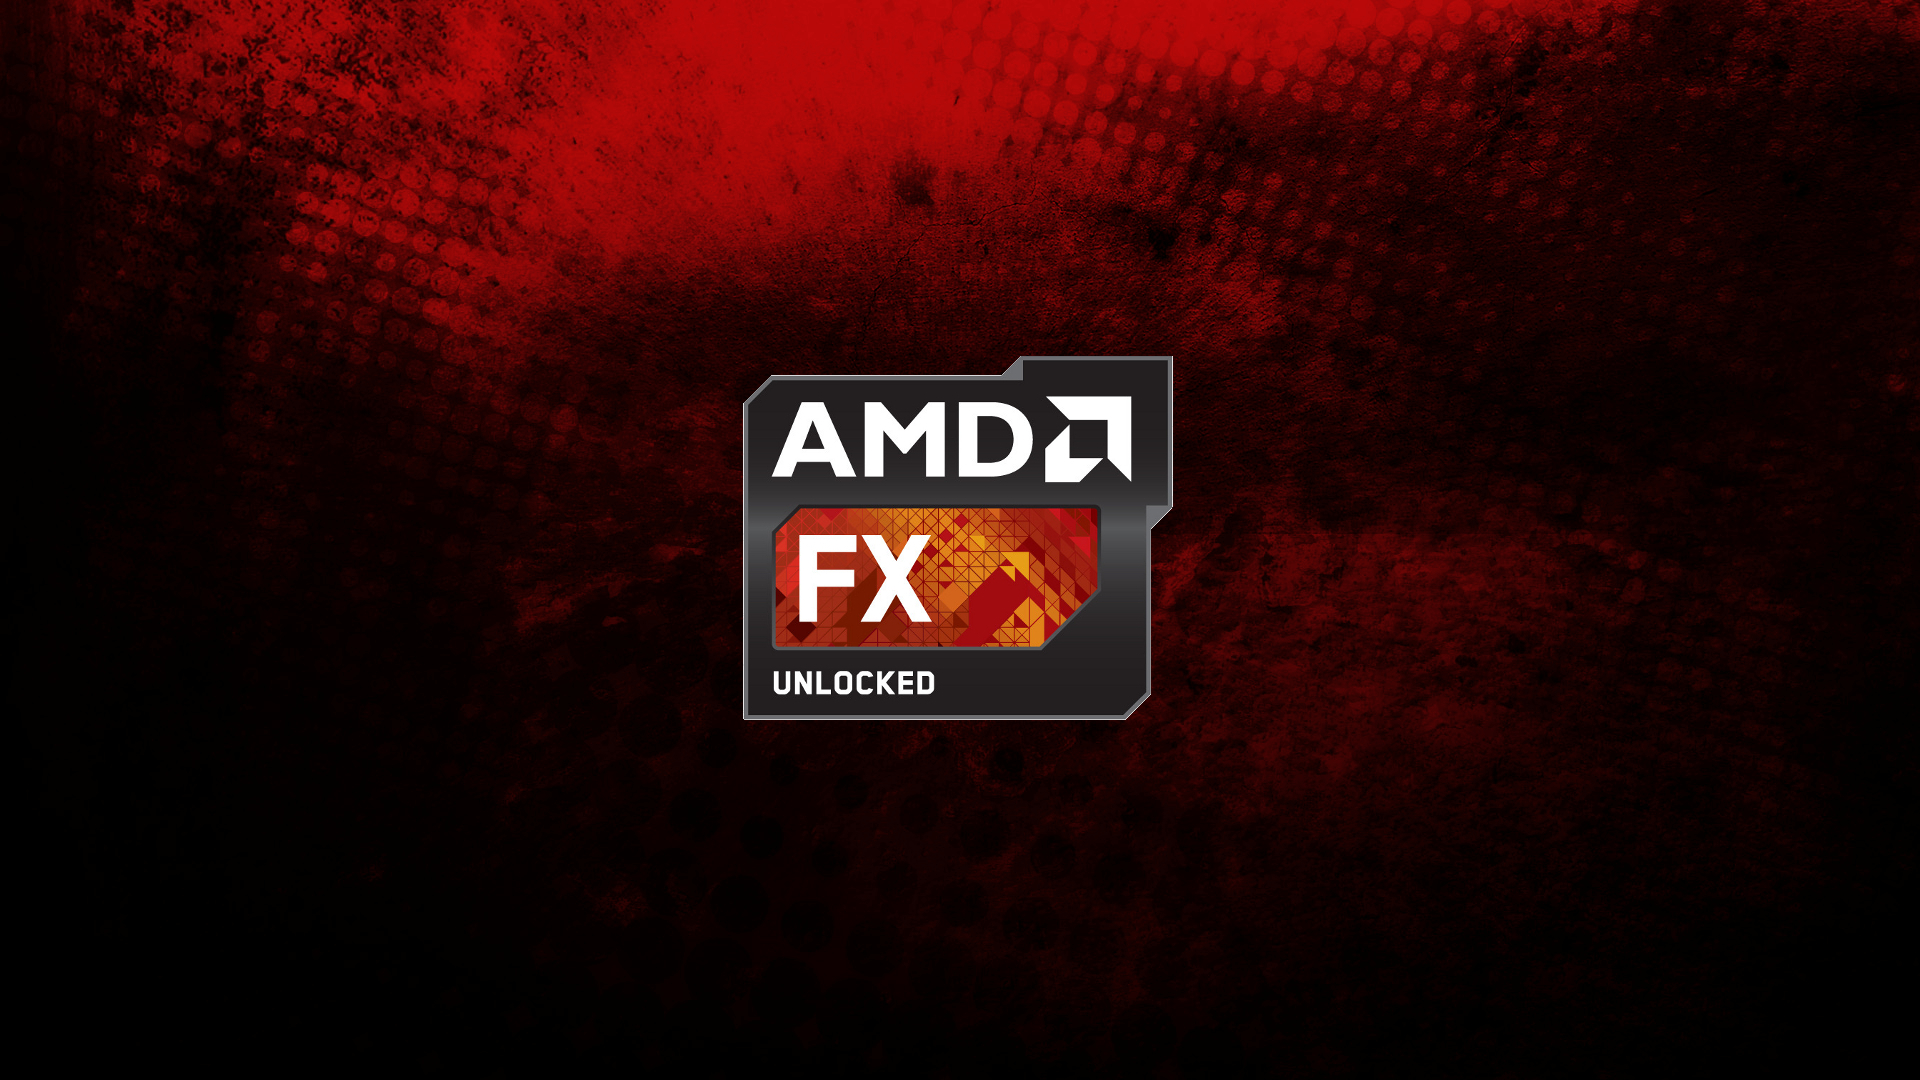 amd fx background by - photo #5